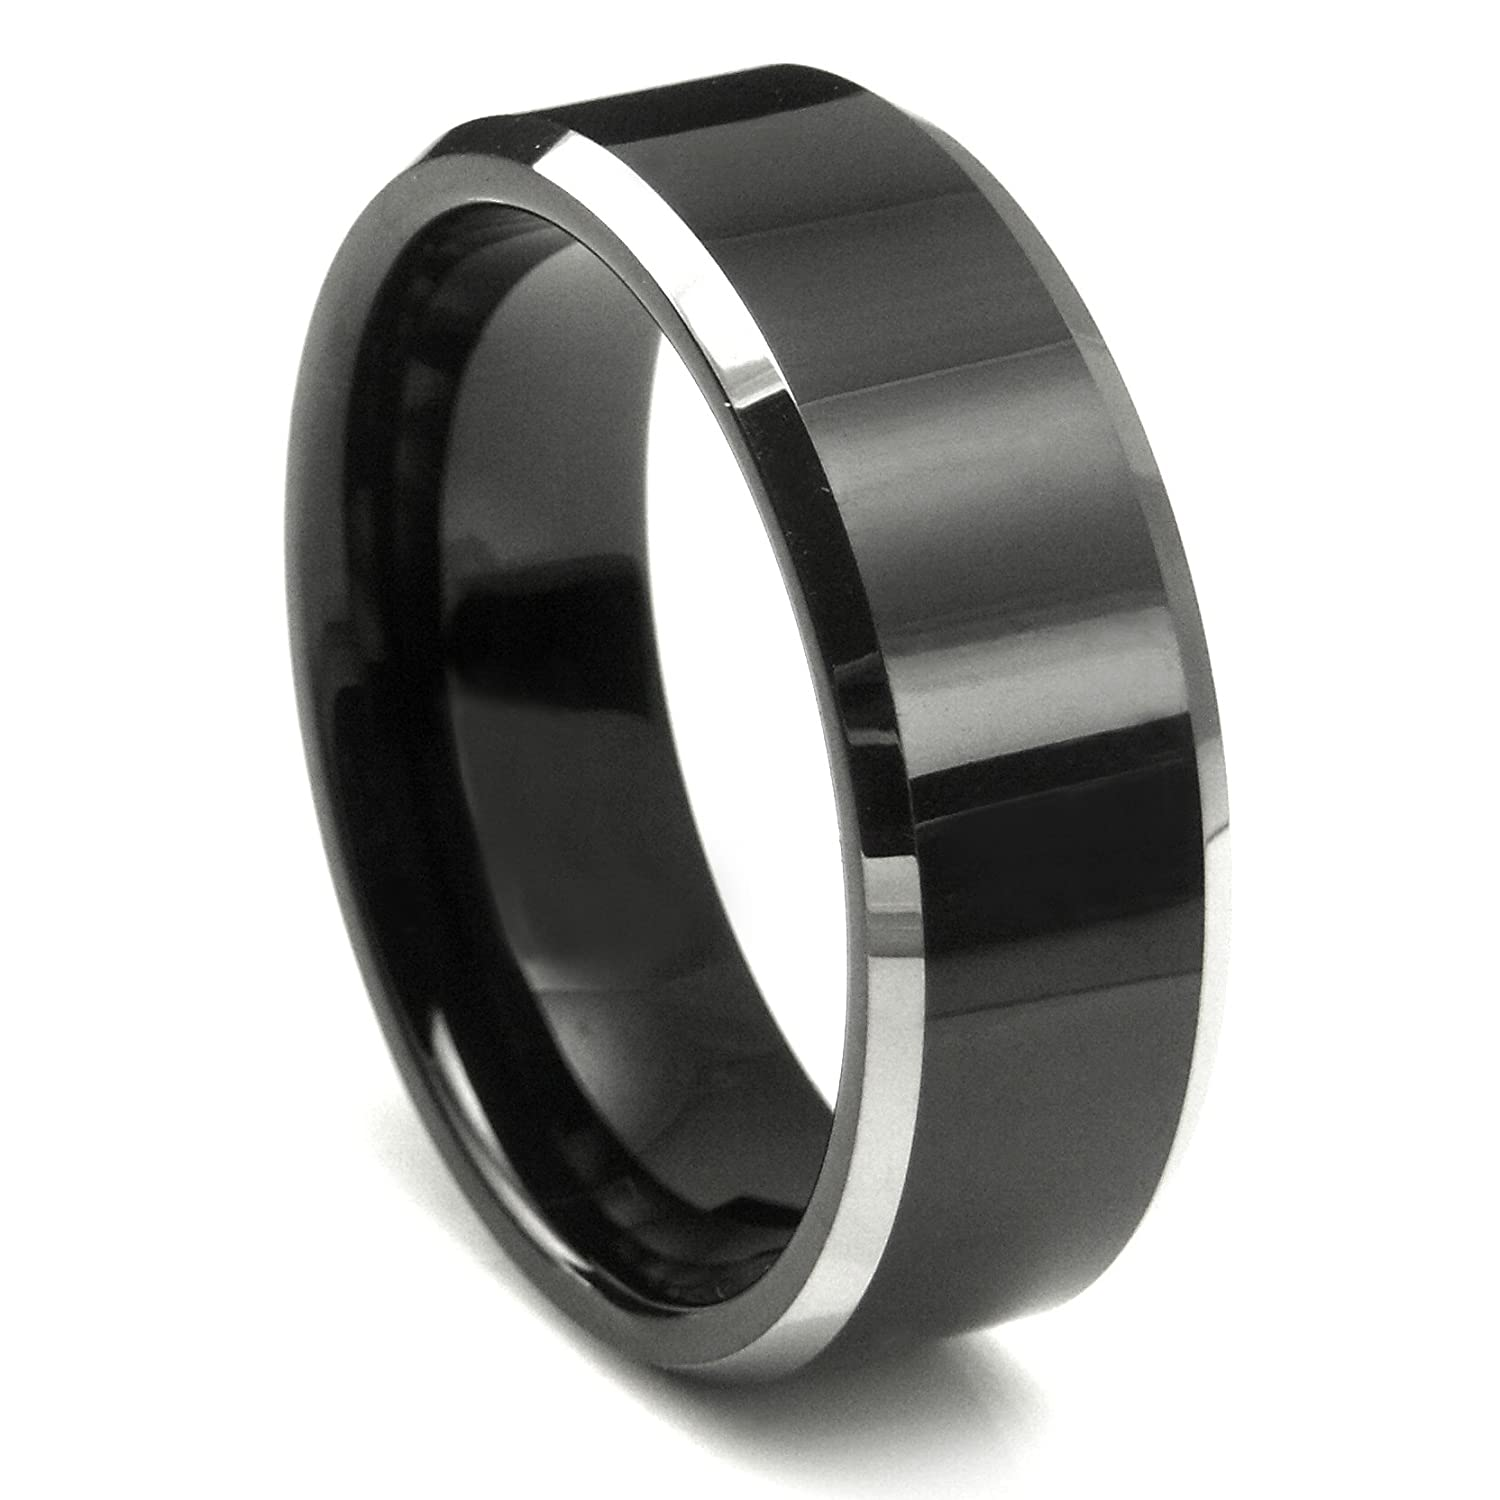 tungsten metal mens ladies unisex ring wedding band 8mm 516 inch flat top two tone black beveled edge comfort fit sz 7 to 16 amazoncom - Mens Wedding Rings Black